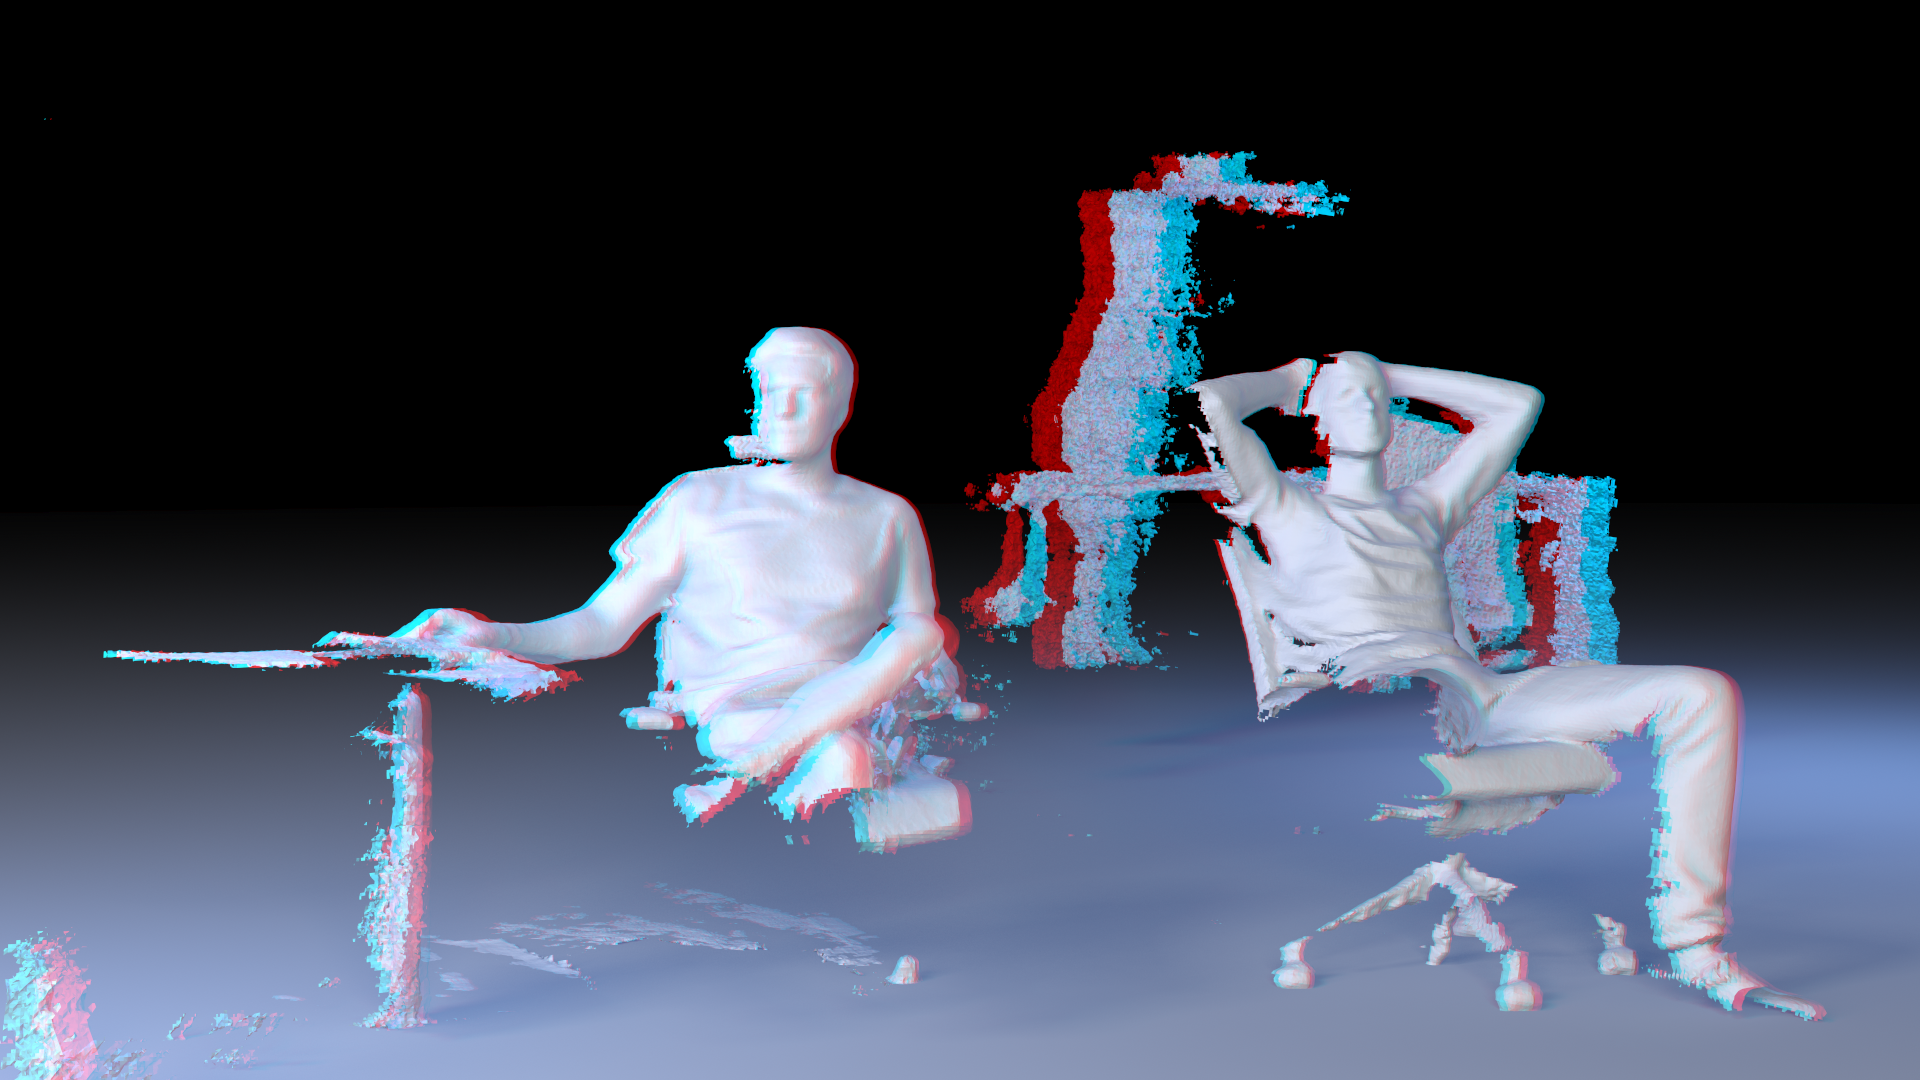 KinFu - Kinect 3D Scan Toolkit